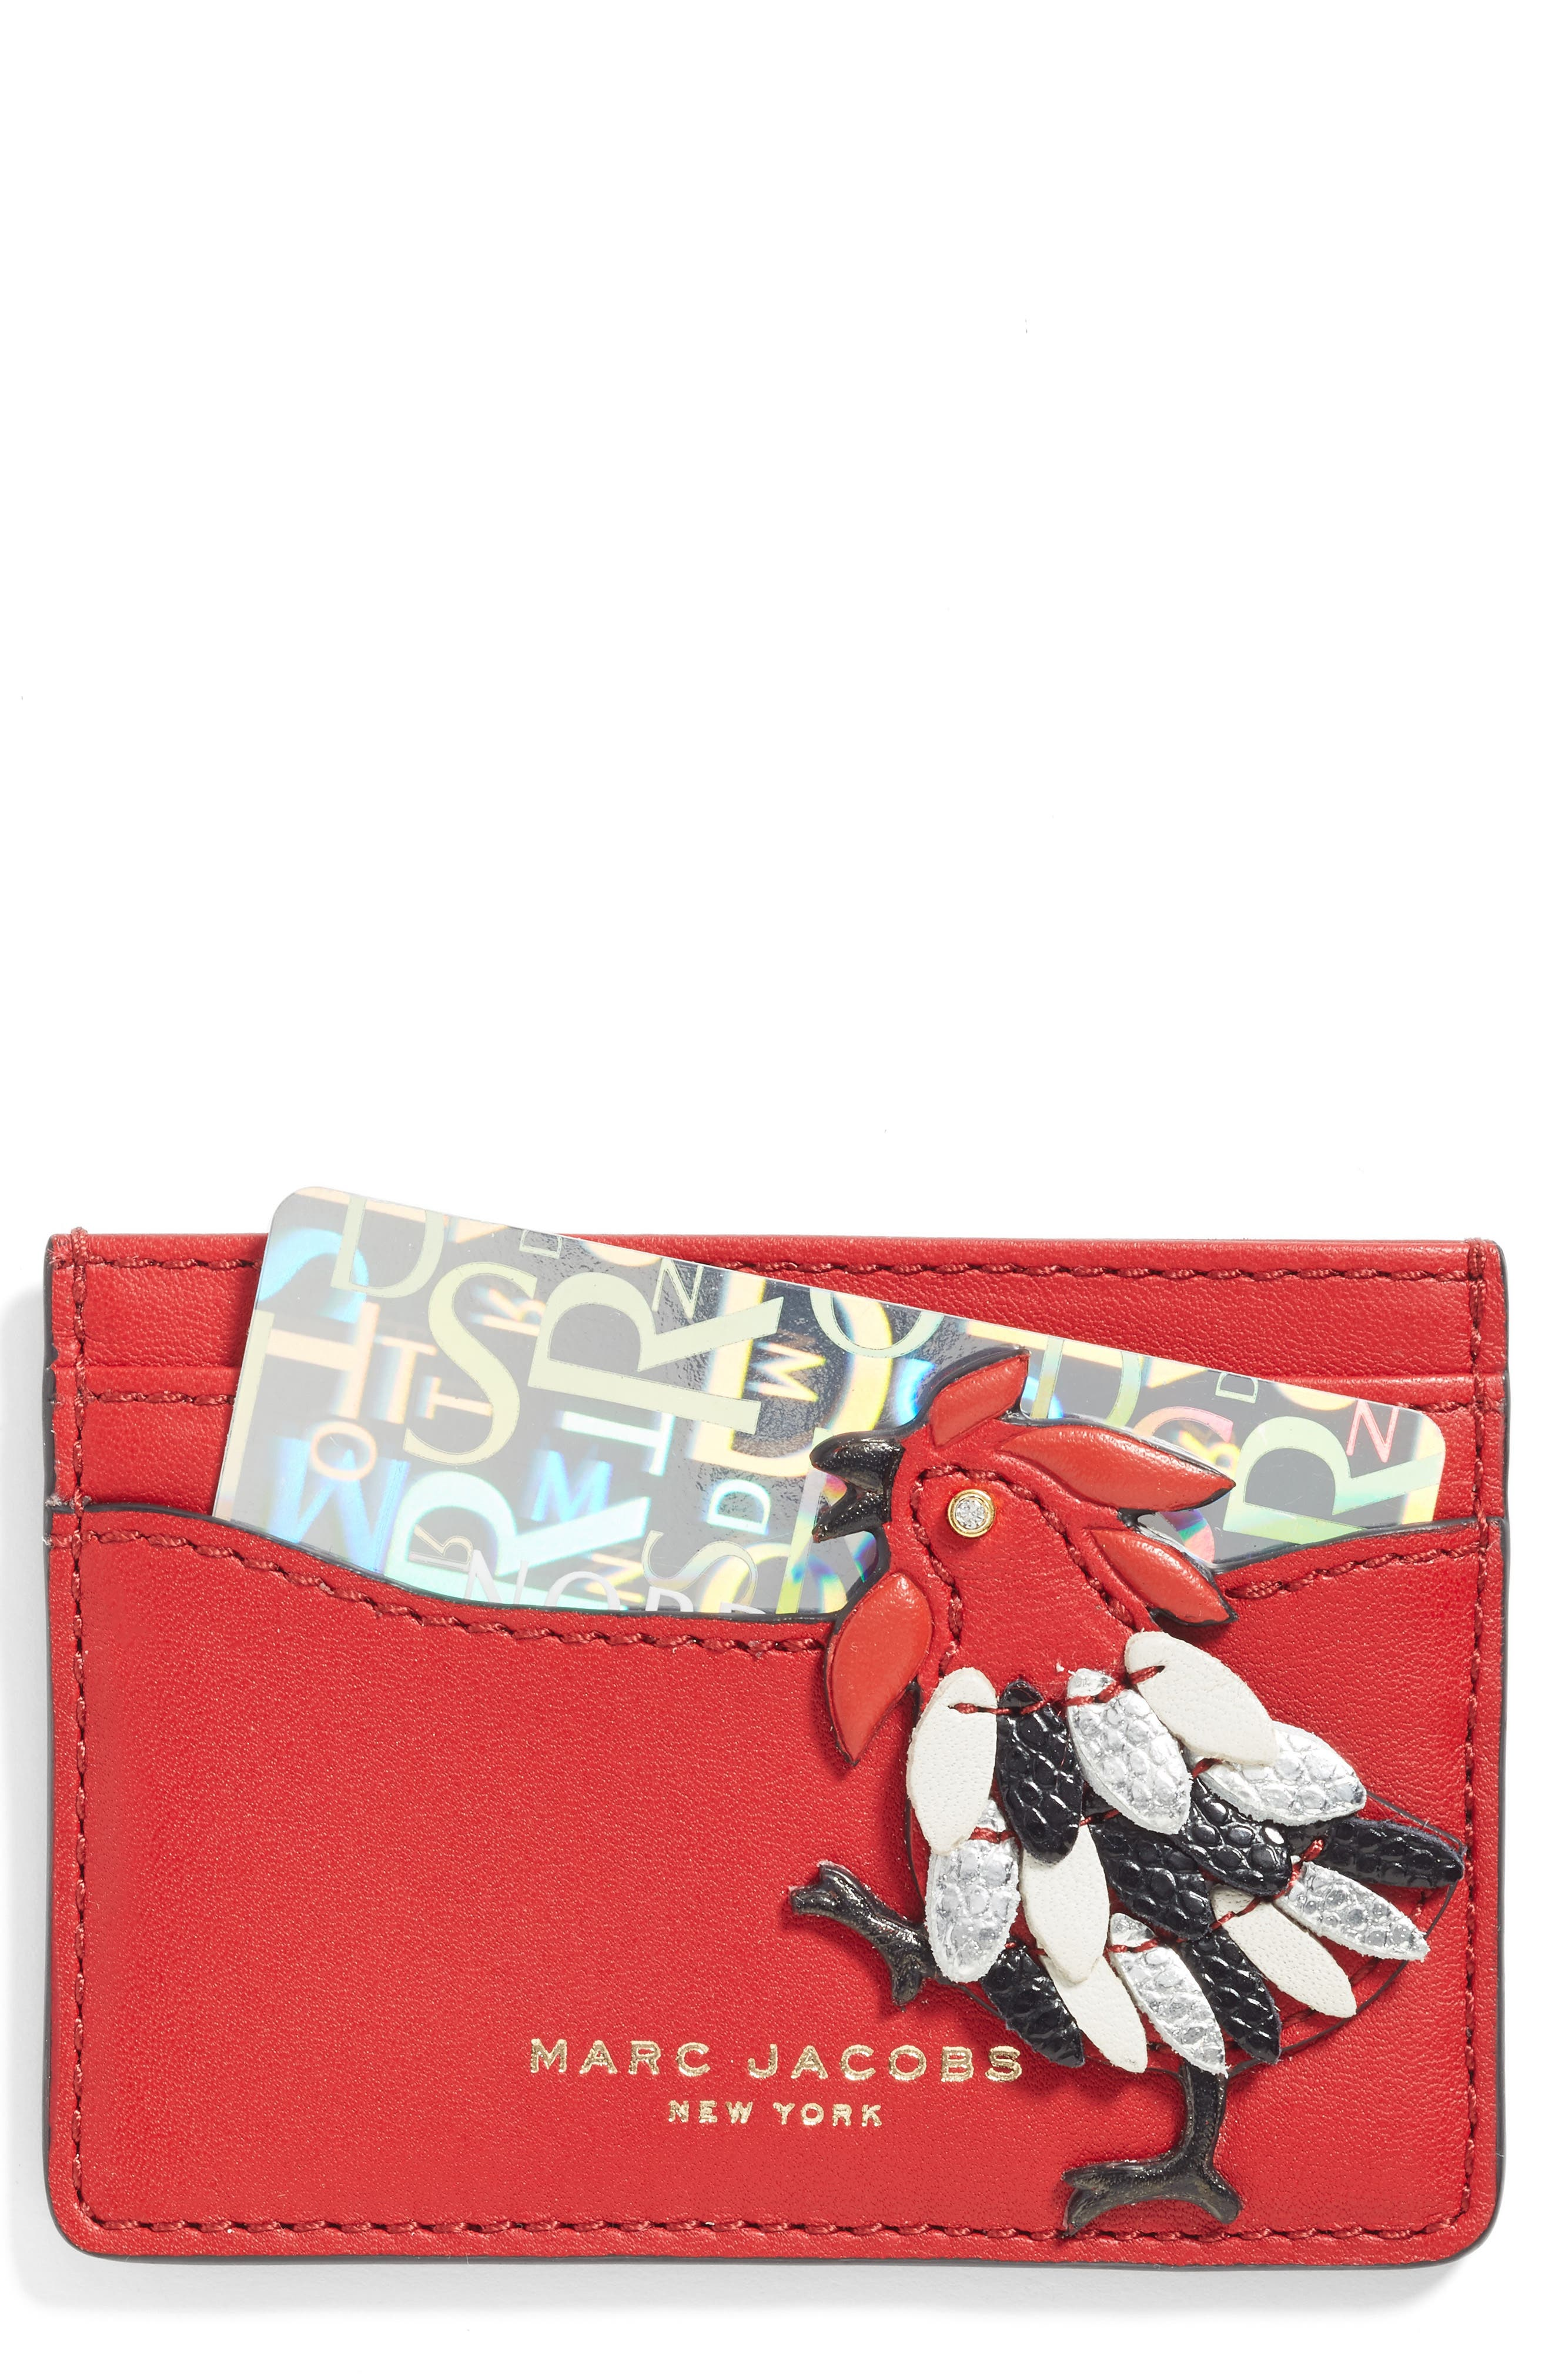 Rooster Leather Card Case,                             Alternate thumbnail 2, color,                             647